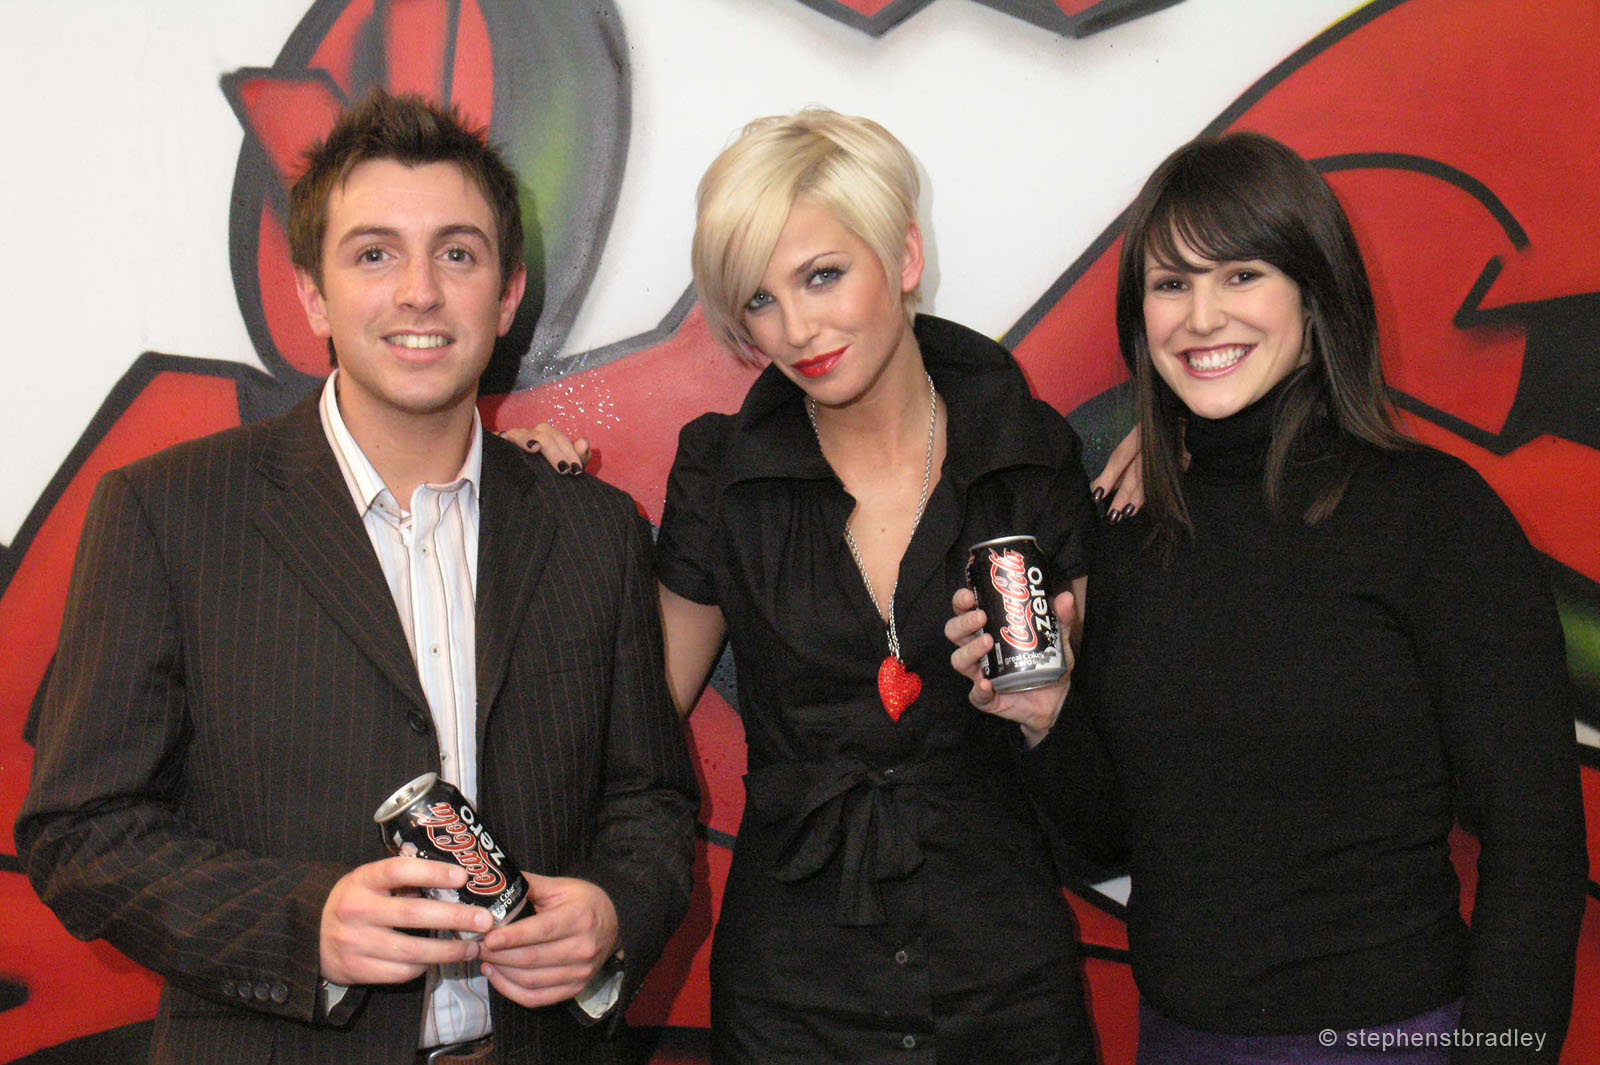 PR Photographer Dublin Ireland photo 1014109 - Sarah Harding Girls Aloud promoting Coca Cola Zero for Edelman PR